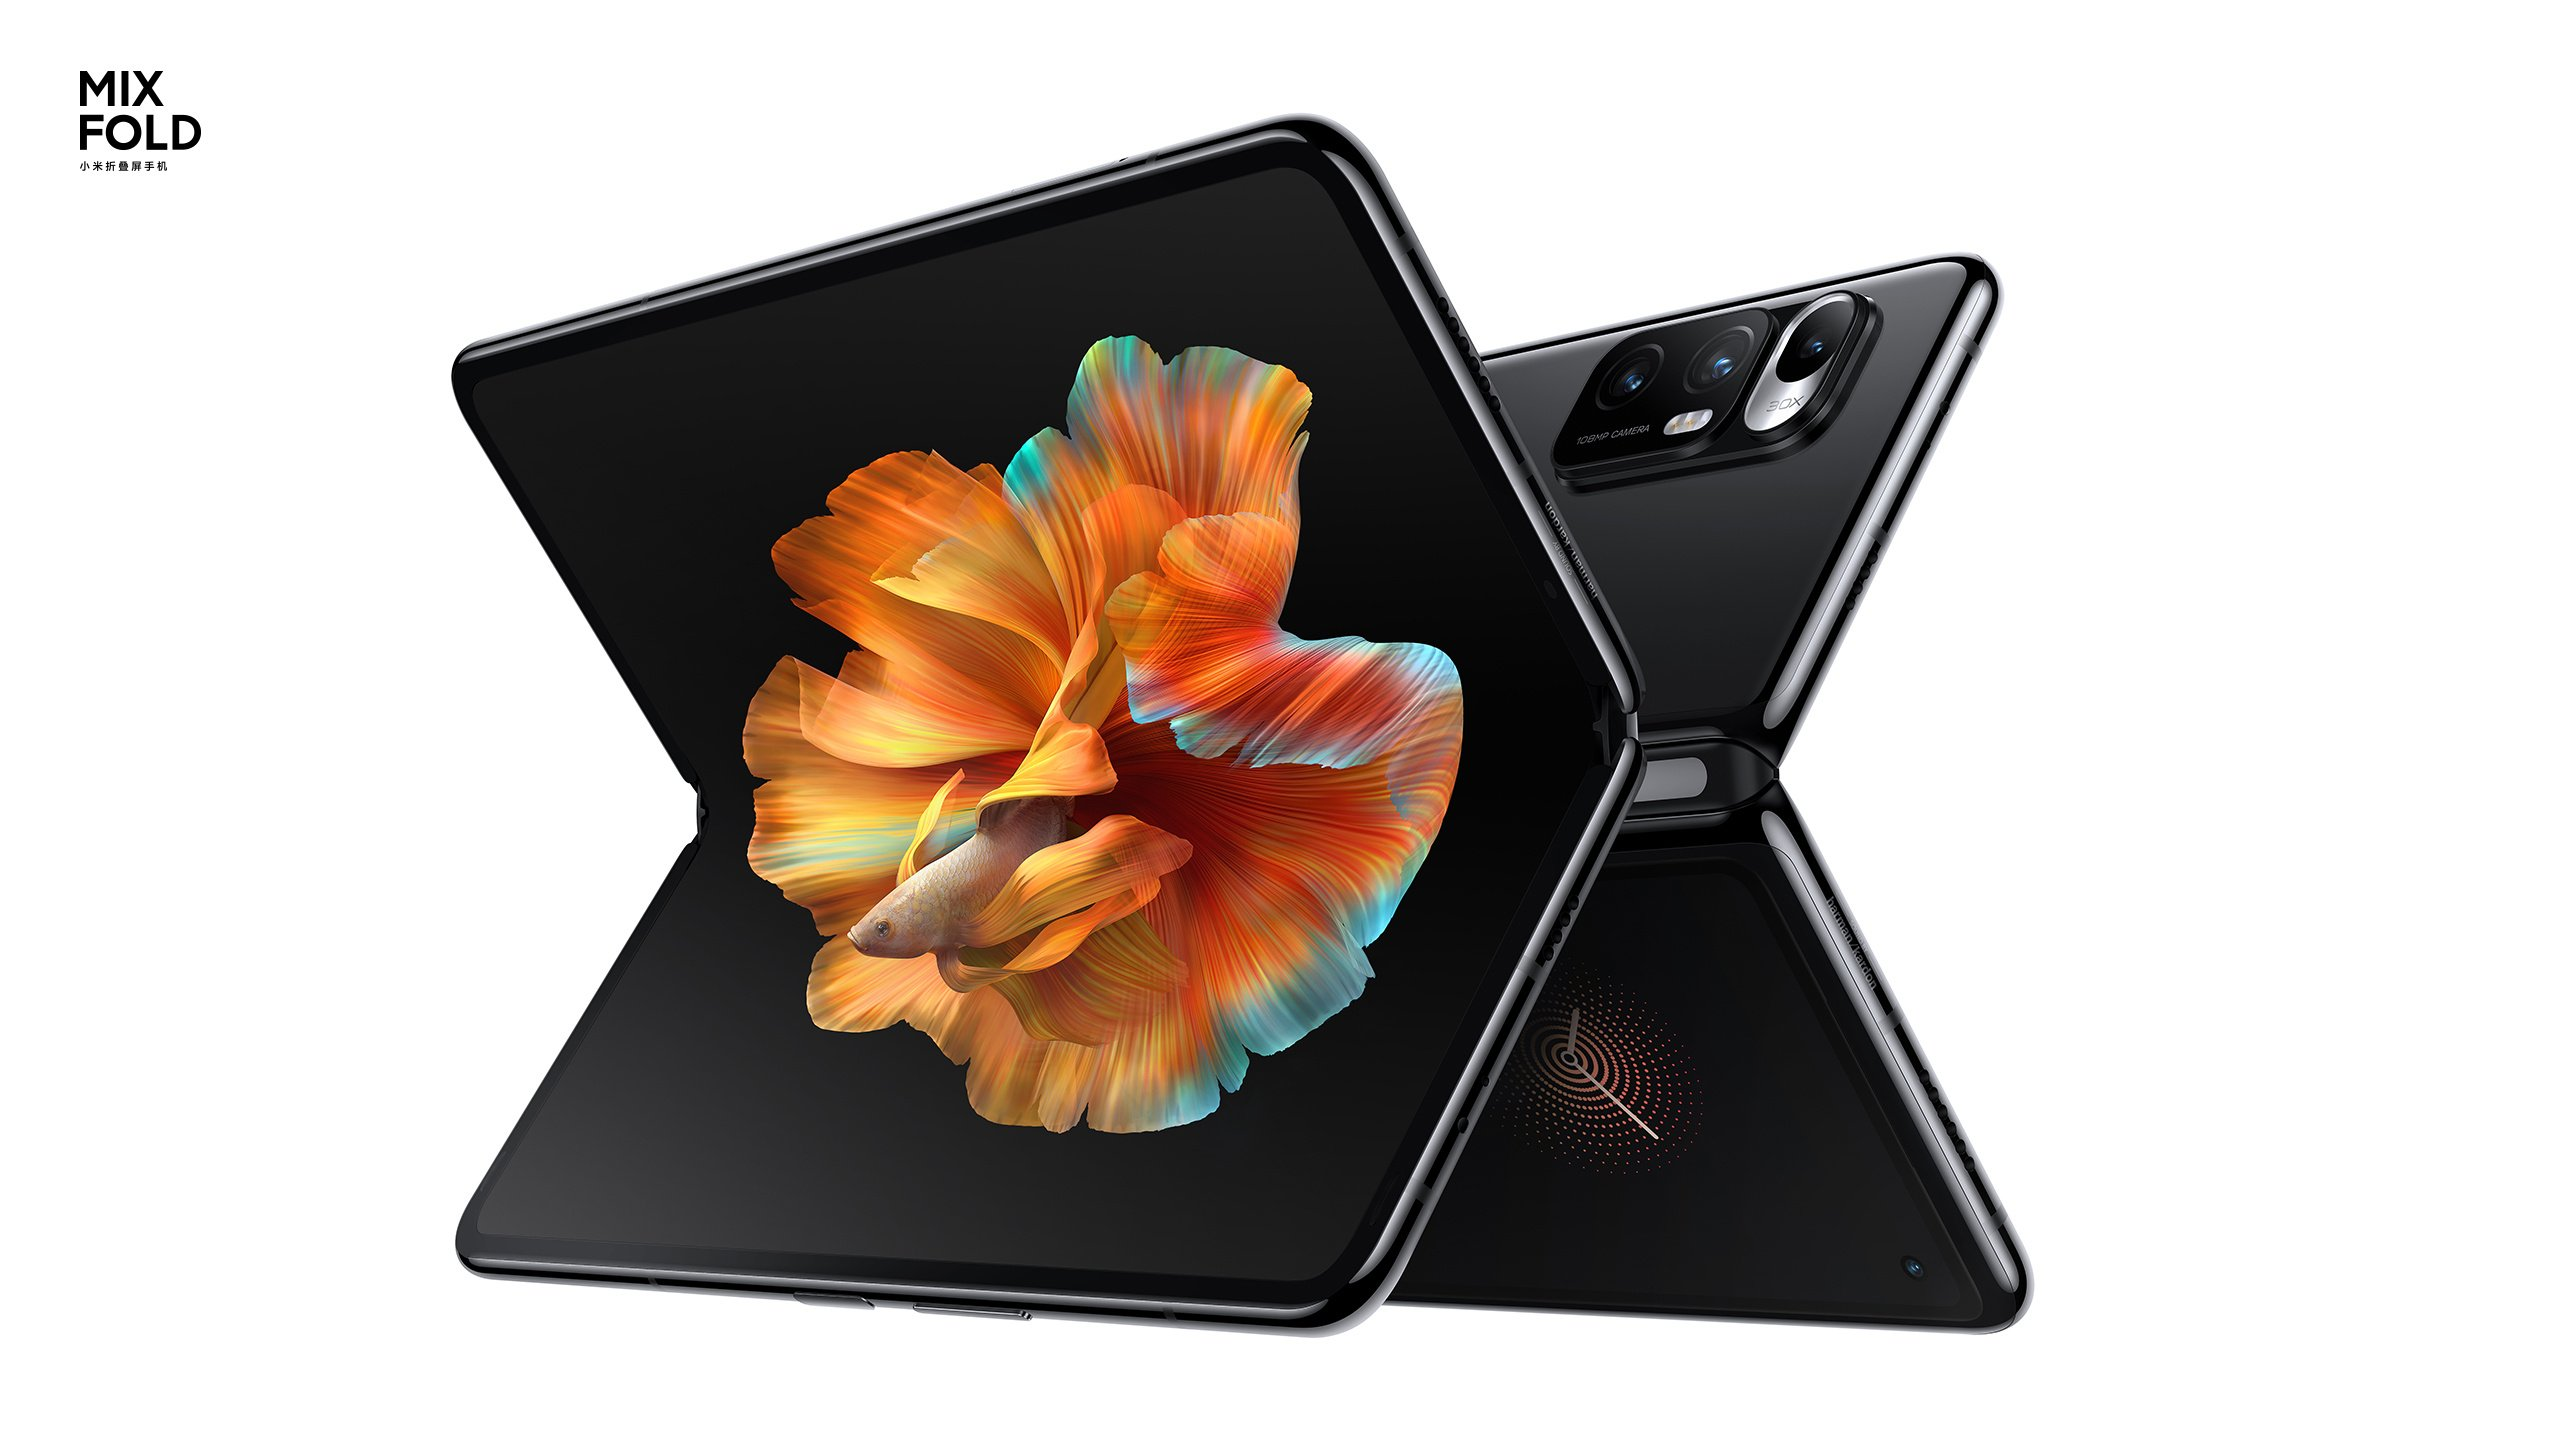 Mi Mix Fold Official Rendering